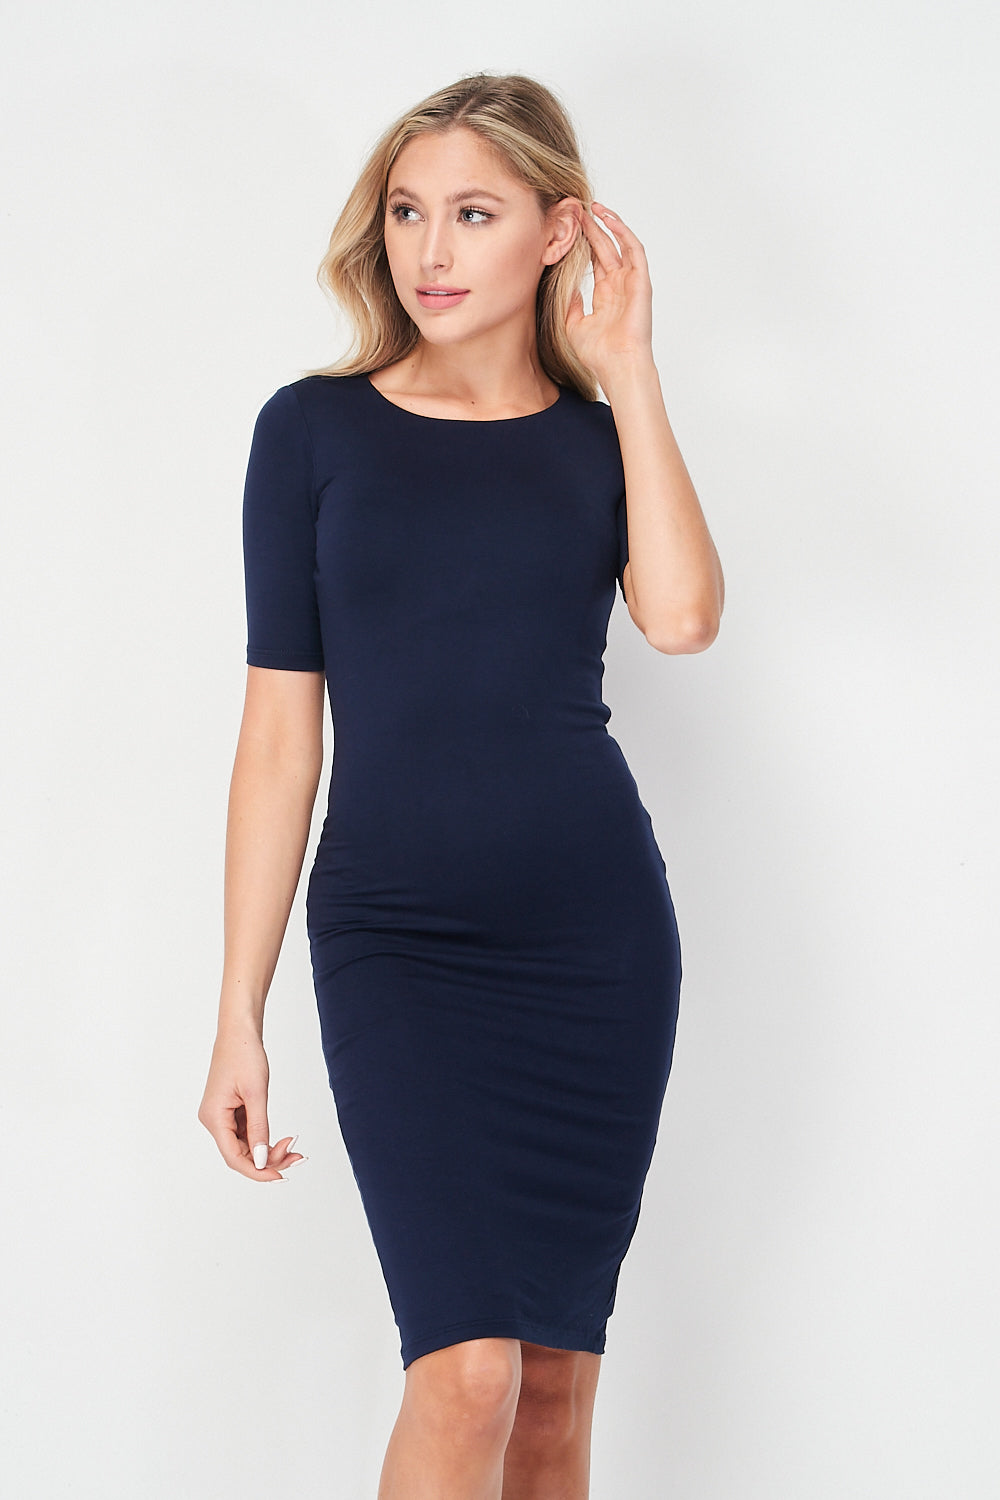 Short Sleeve Midi Knit Dress | Navy - Velvet Torch